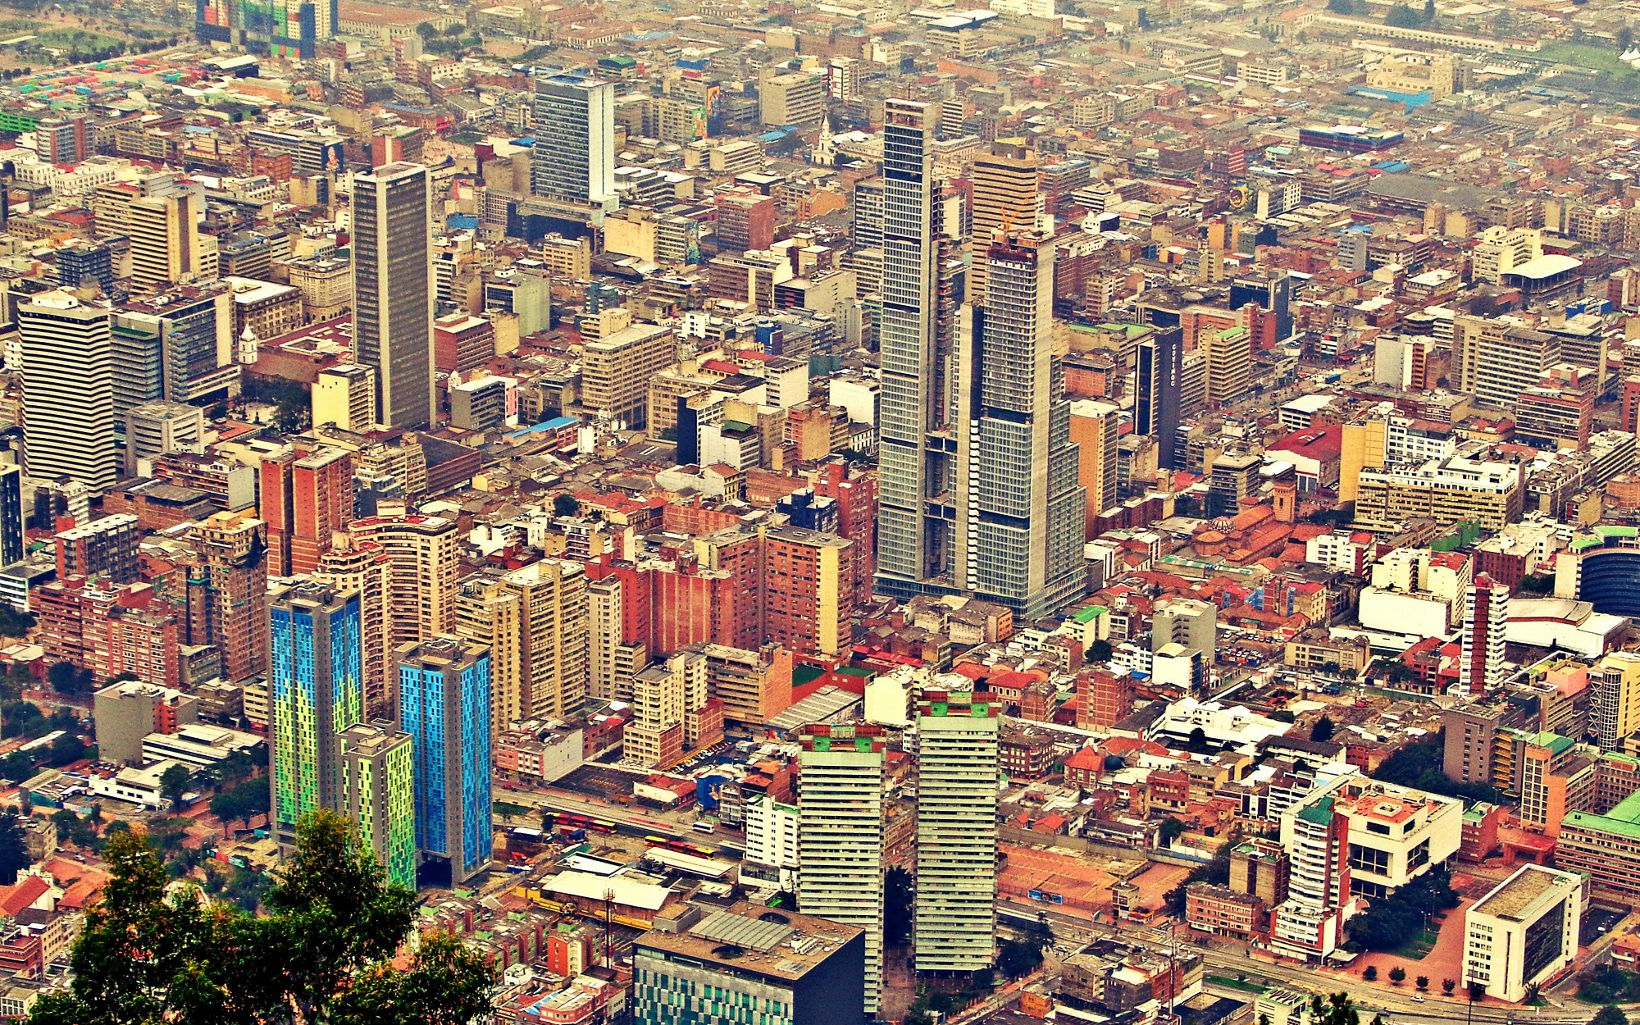 Bogota is the capital (city) of Colombia. As of 2009, more than 7 million people live in Bogota, which makes it the largest city in Colombia